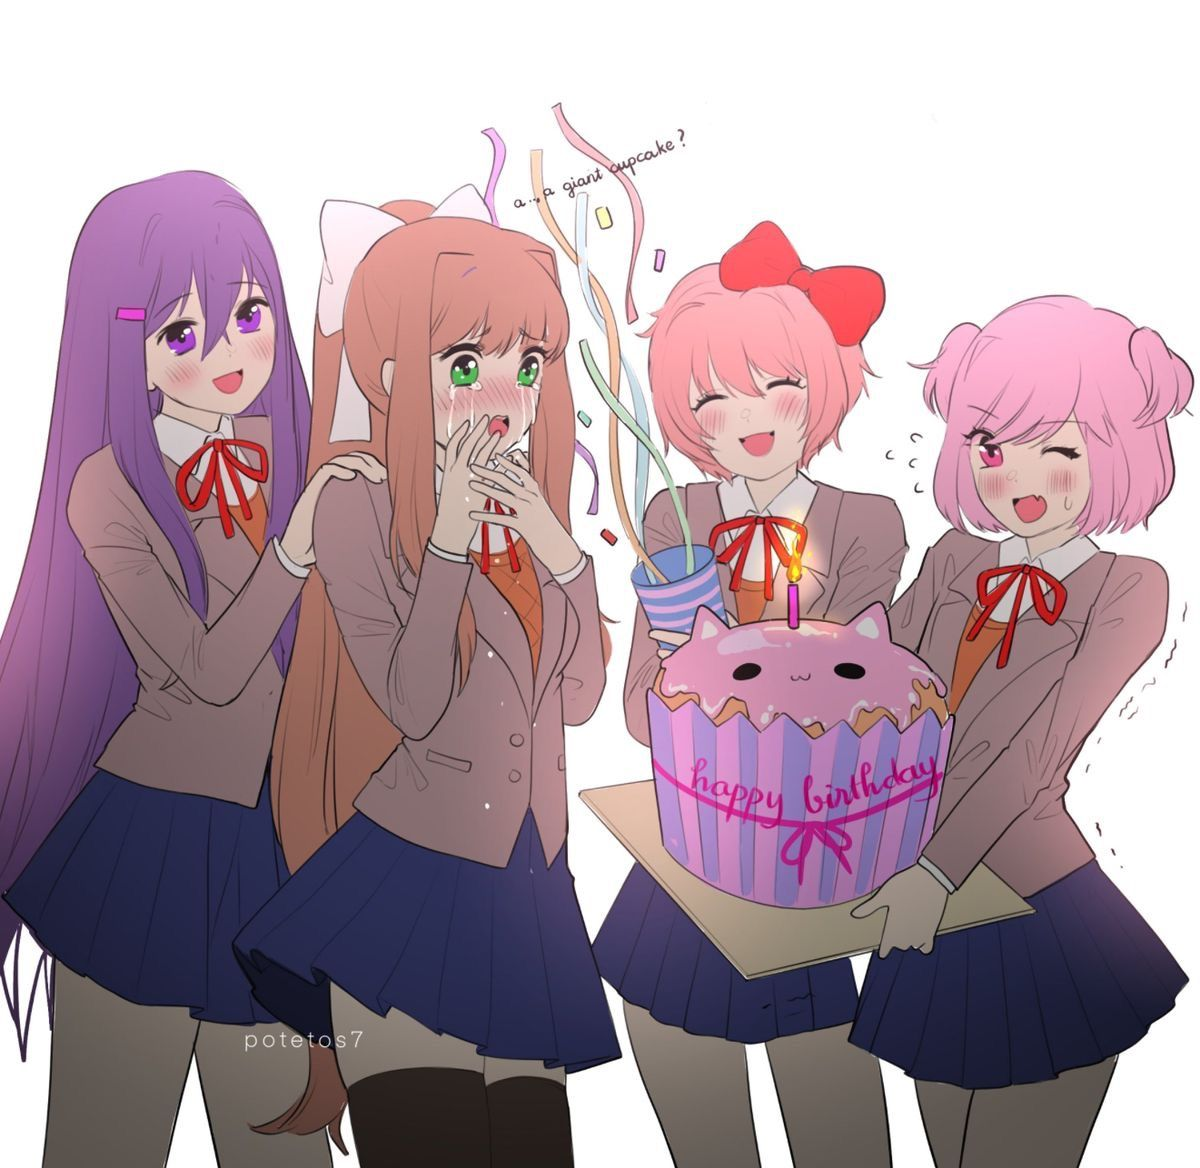 2nd Anniversary ( by potetos7 ) Literature club